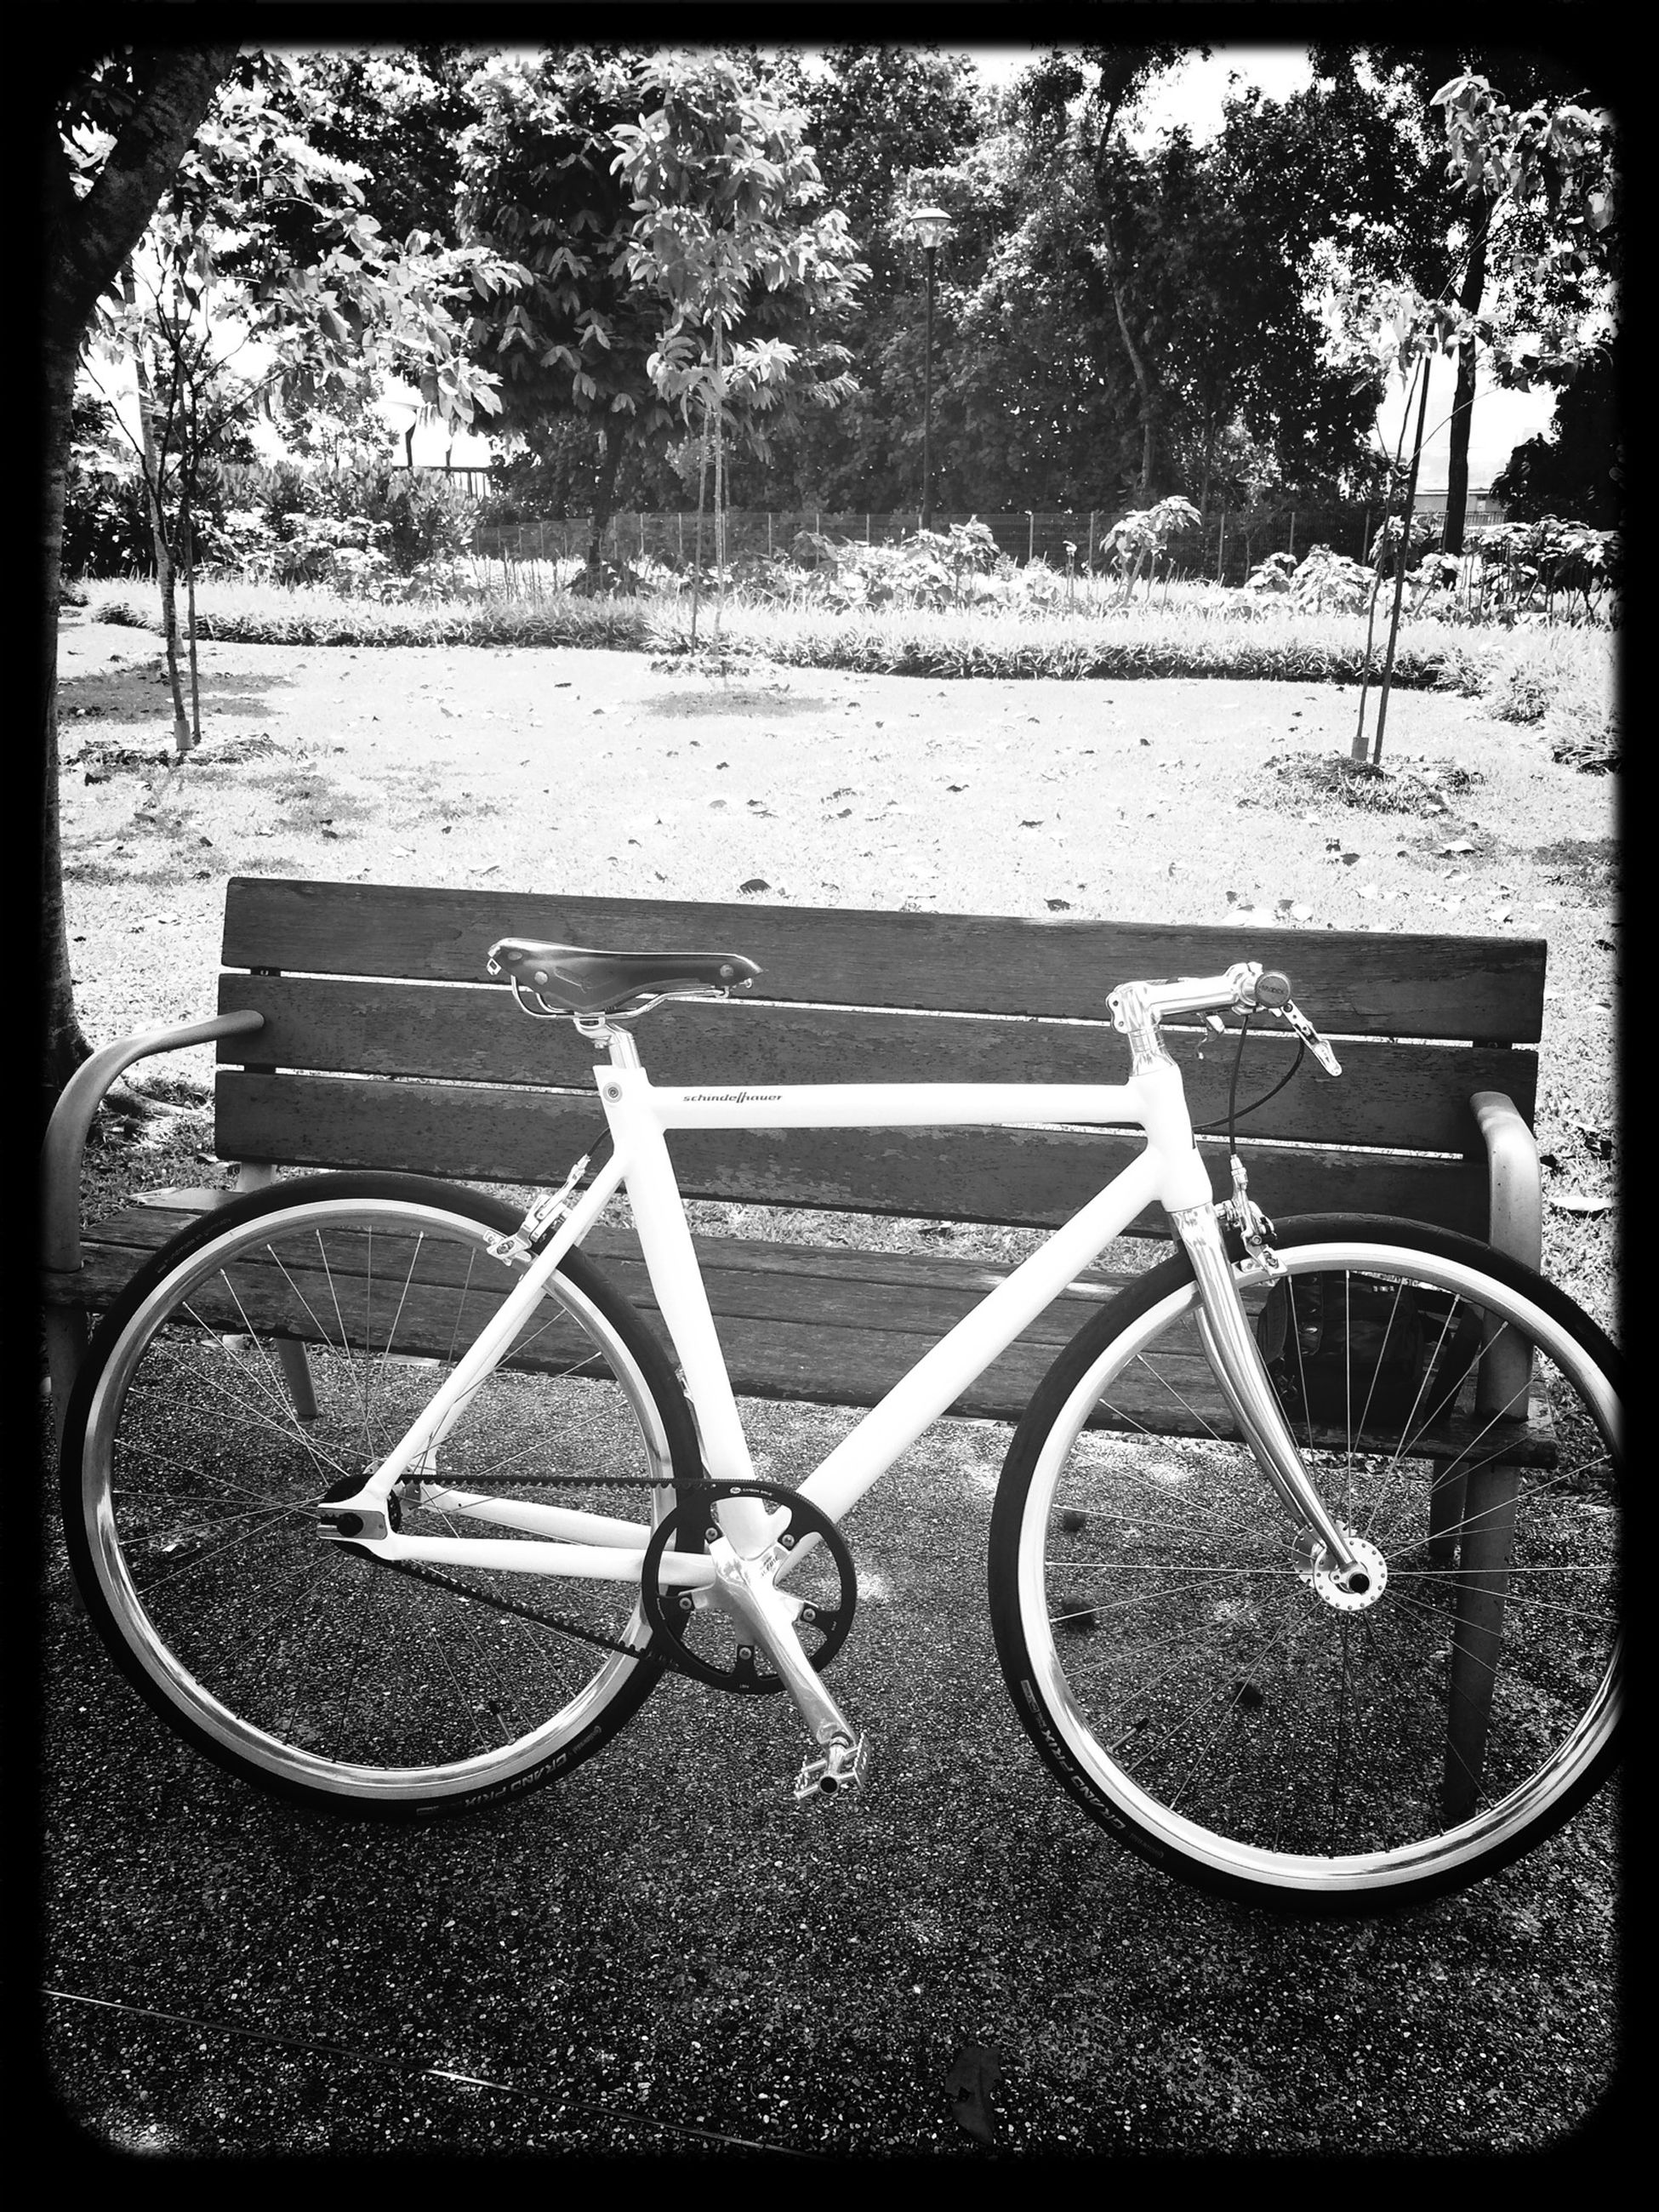 transfer print, bicycle, auto post production filter, transportation, tree, land vehicle, mode of transport, stationary, park - man made space, day, metal, parked, parking, outdoors, absence, sunlight, no people, playground, close-up, wheel